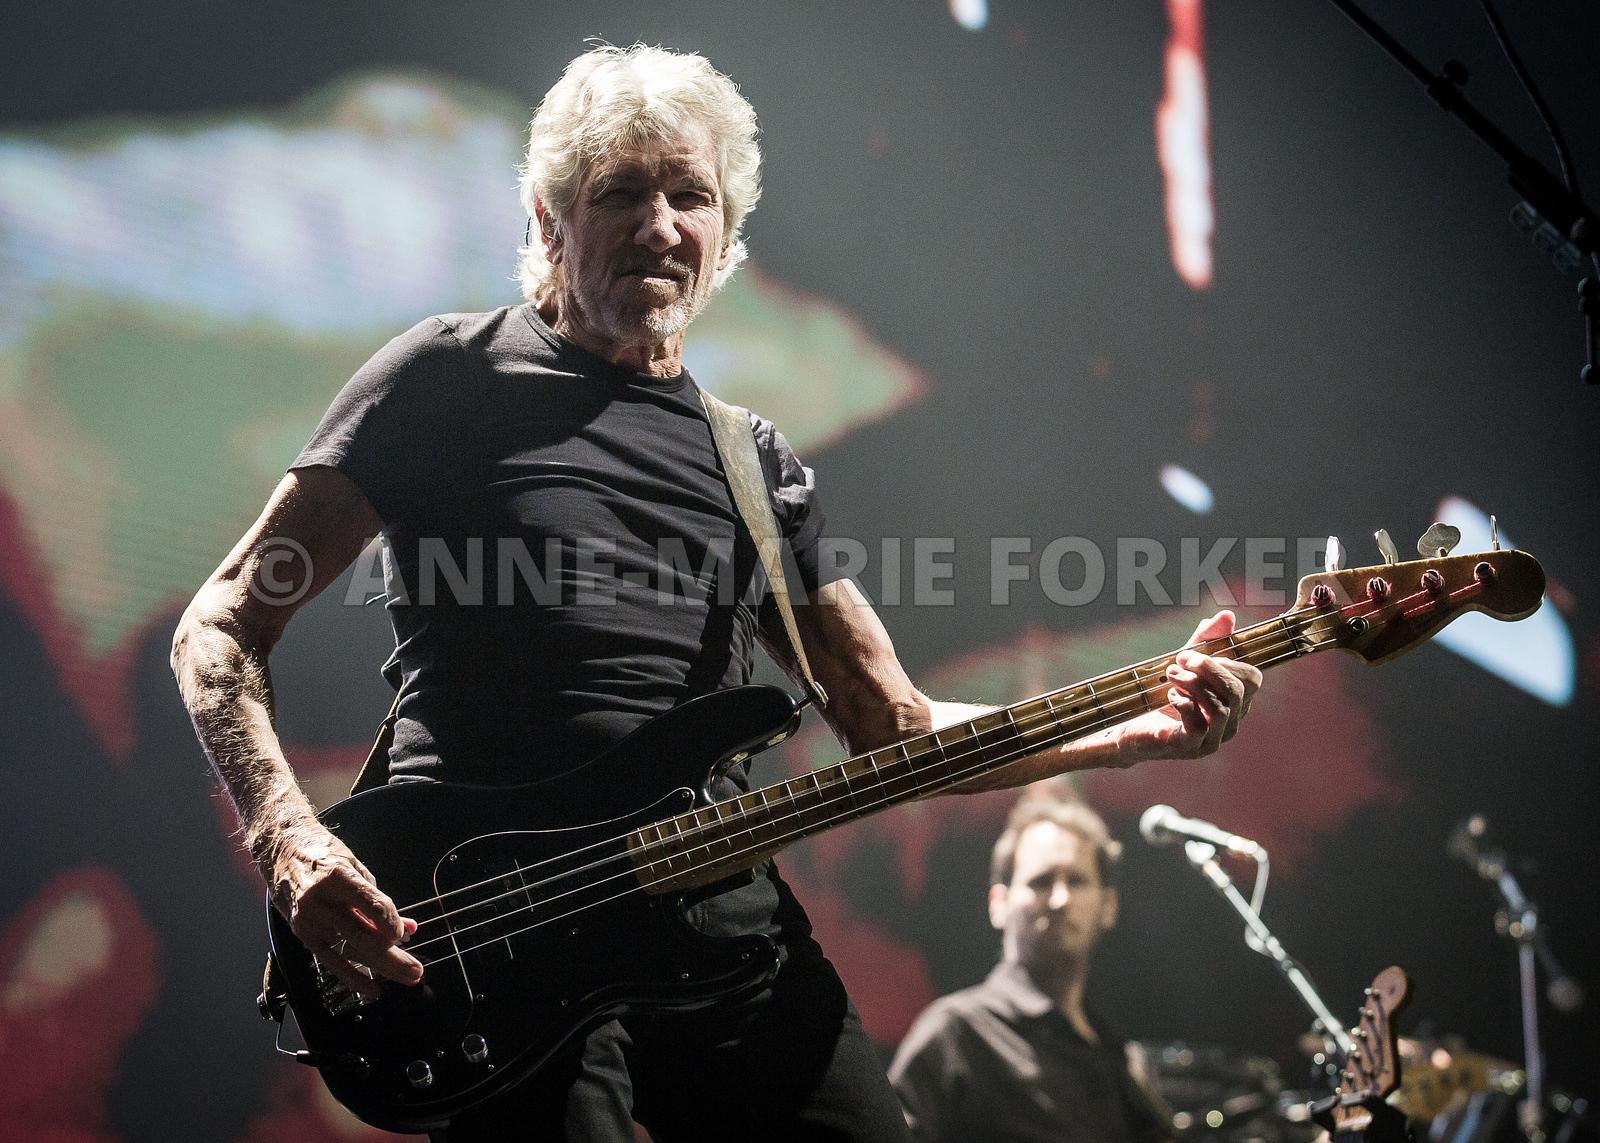 Roger_Waters_-_Anne-Marie_Forker-4624